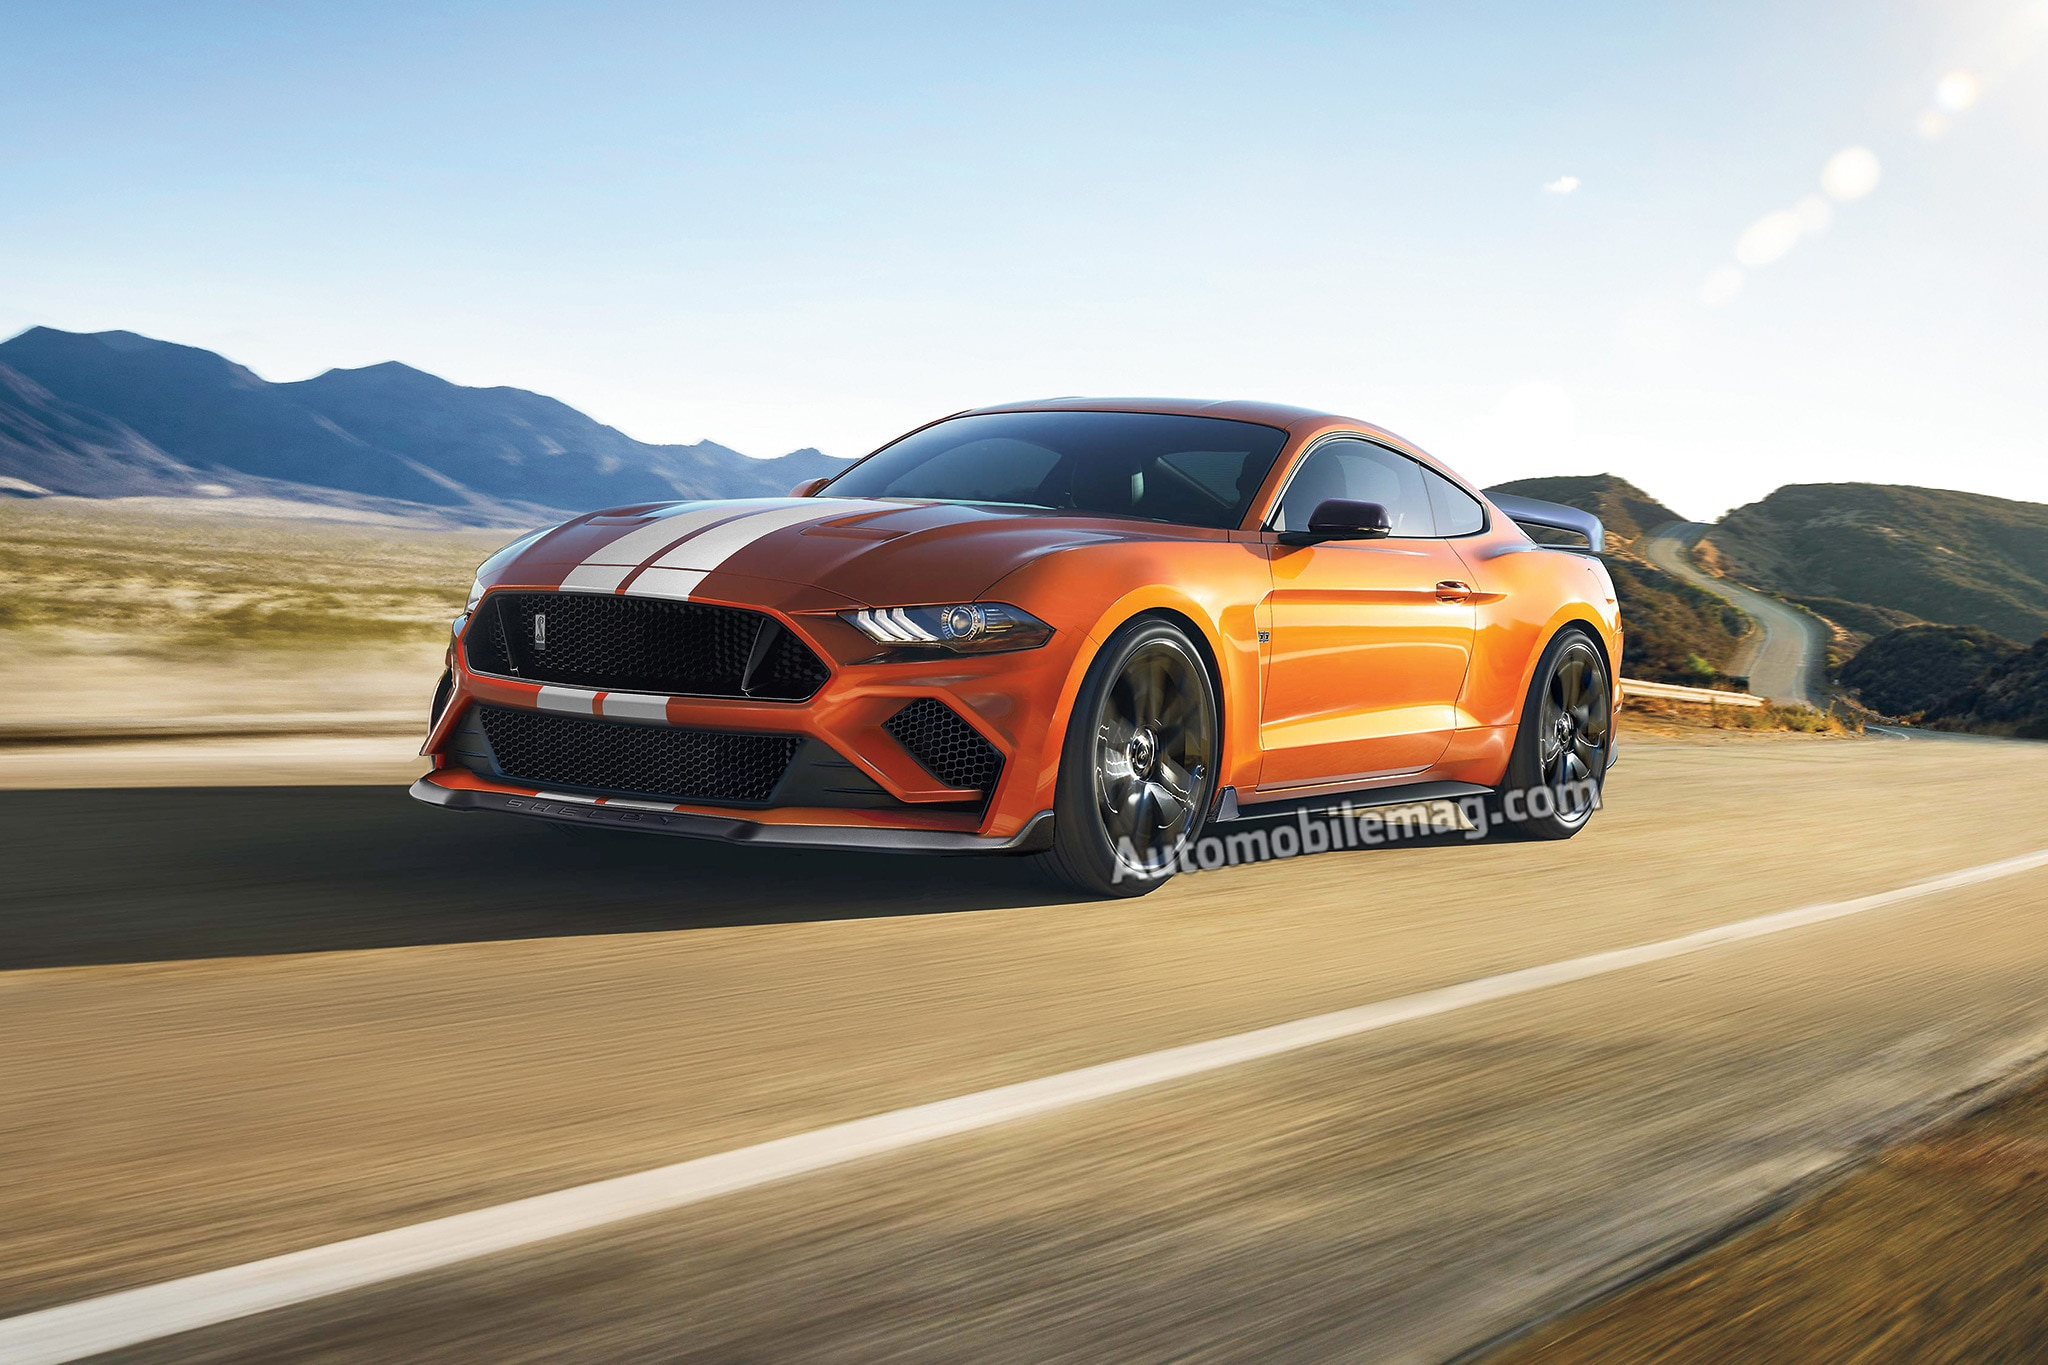 2019 Gt 500 >> 2019 Ford Mustang Shelby GT500 Confirmed with 700 Horsepower | Automobile Magazine